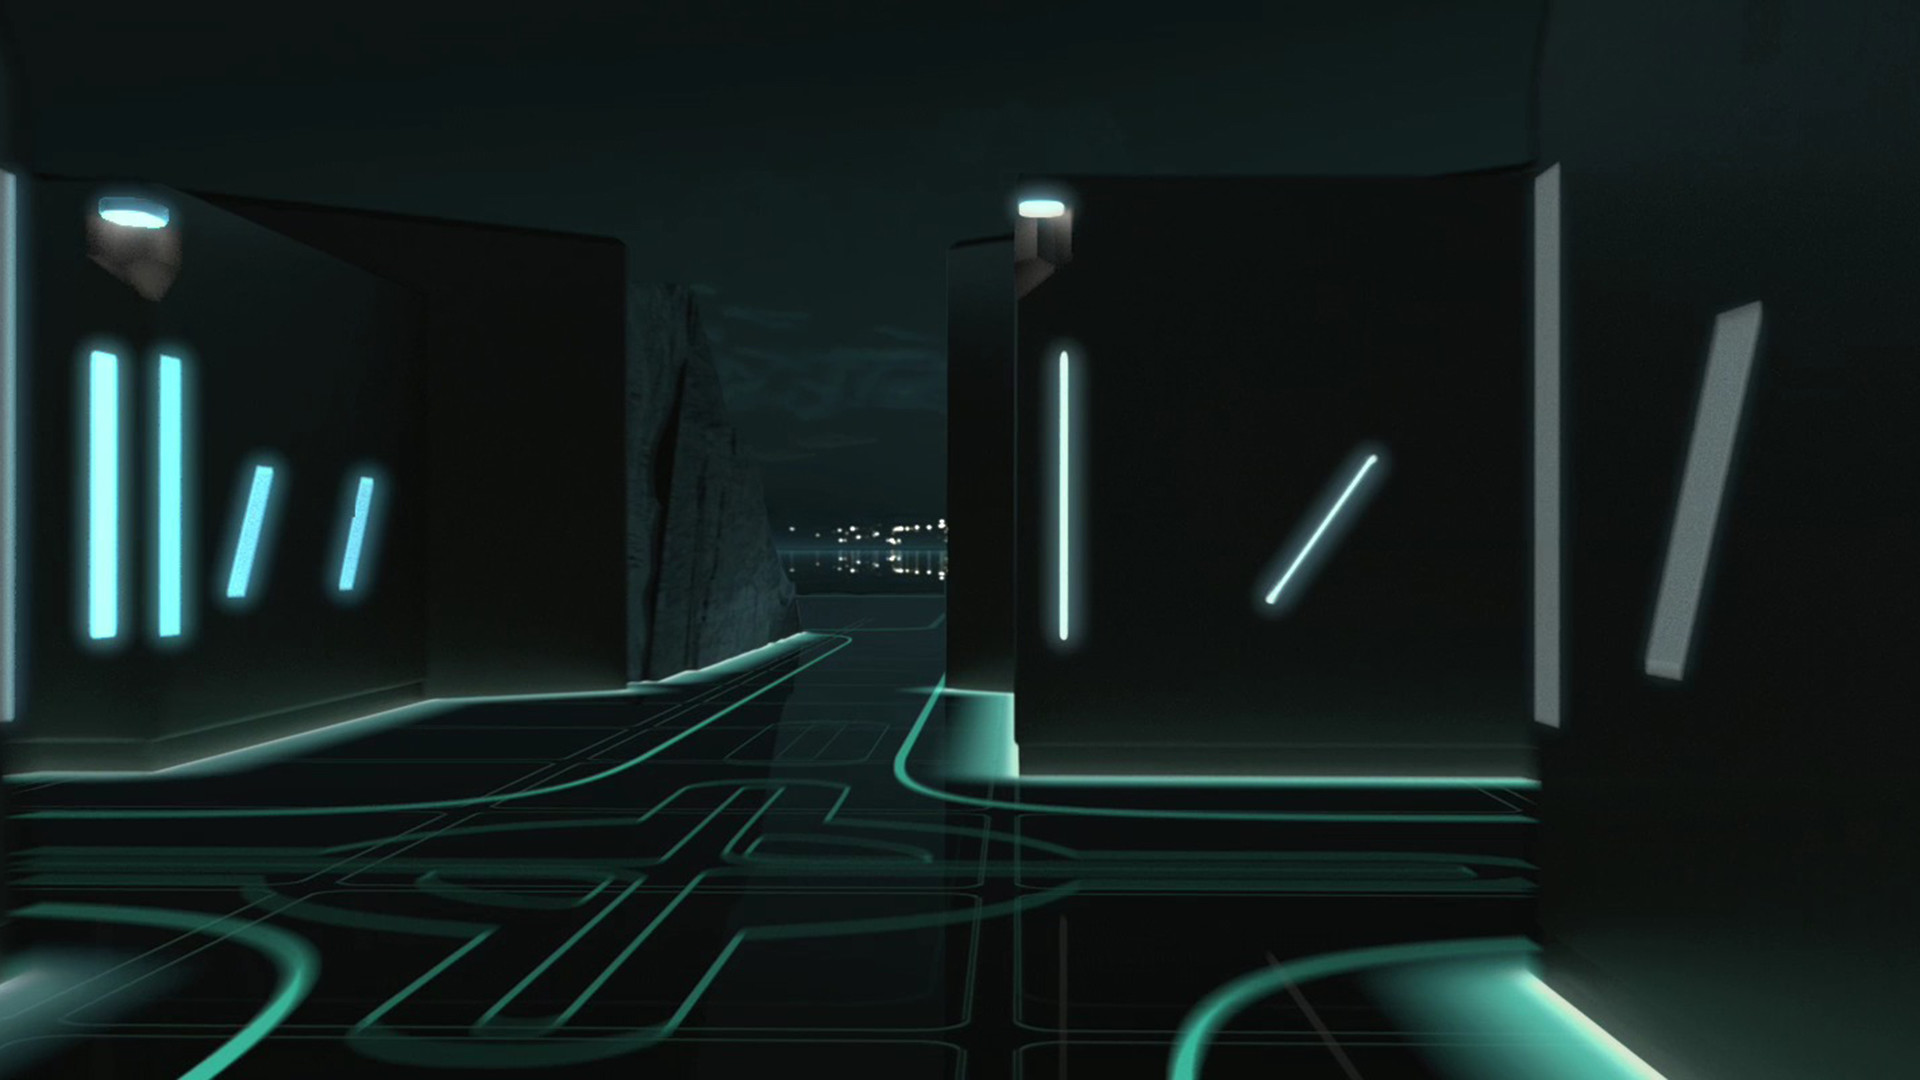 1920x1080 Tron Legacy | Free Desktop Wallpapers for HD, Widescreen and Mobile .